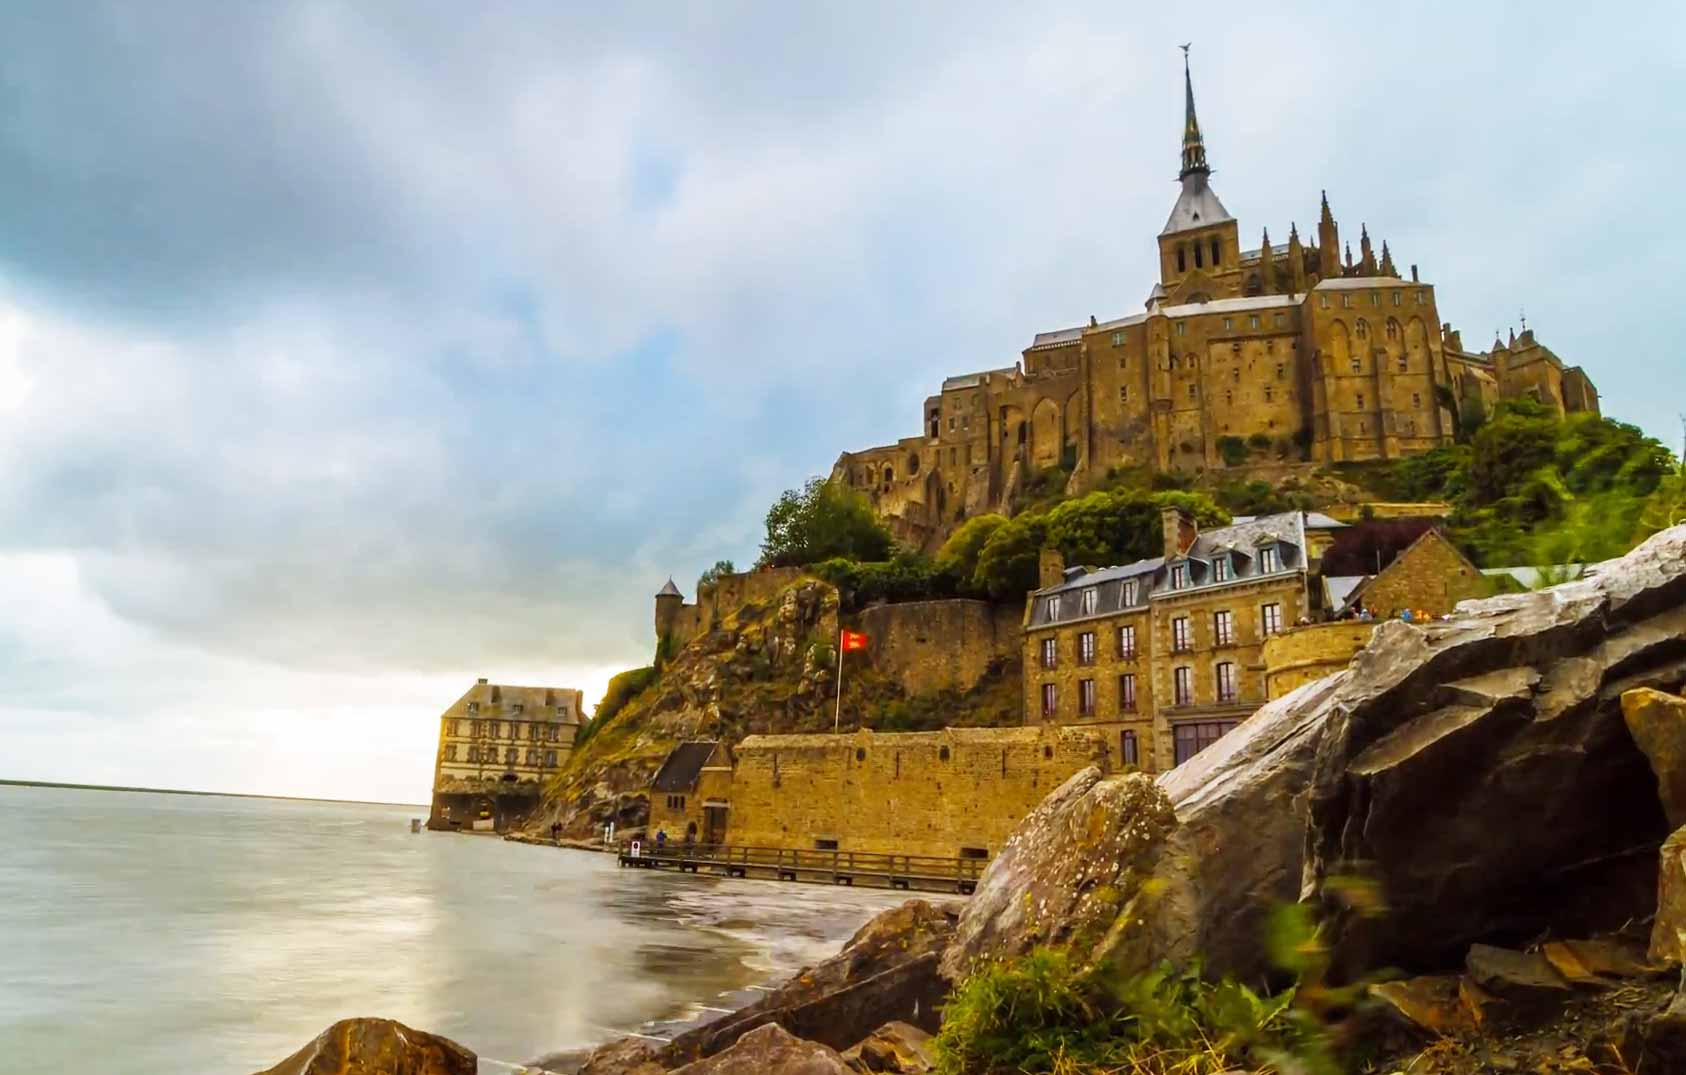 Around The World In 4k Ultra Hd By Jared Cook